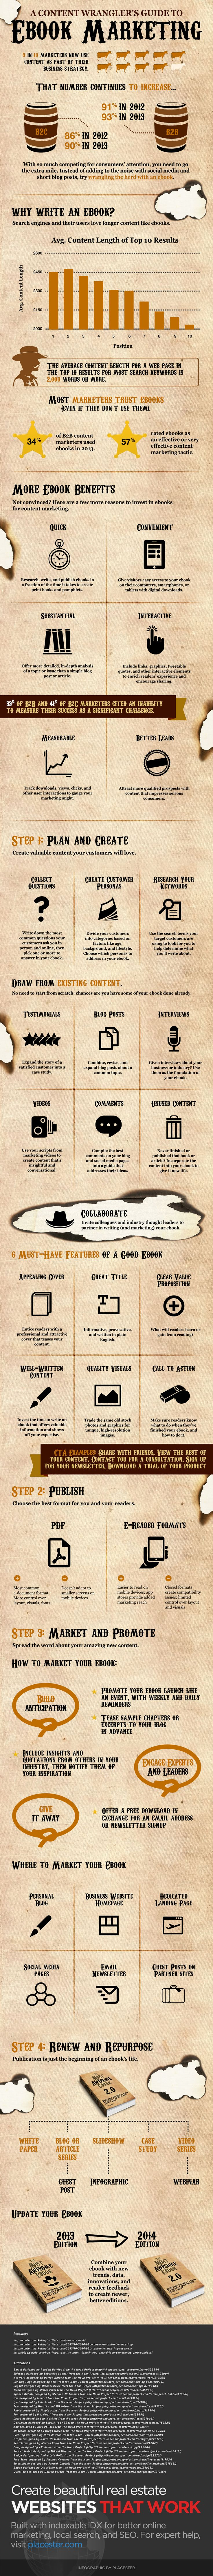 The Content Wrangler's Guide to eBook Marketing [Infographic]